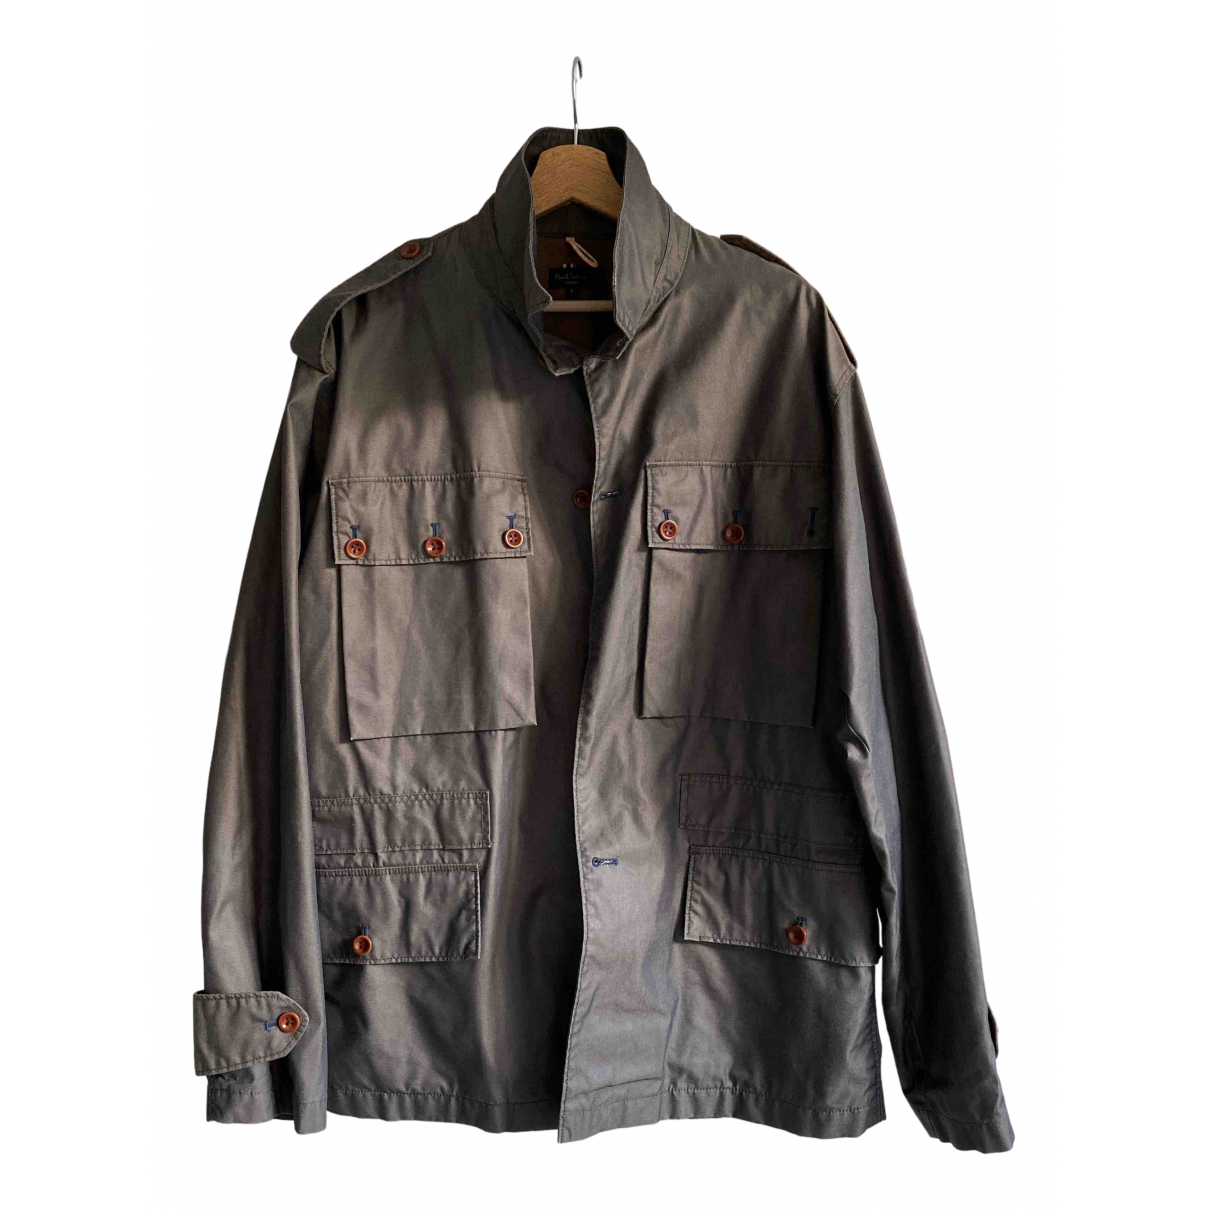 Paul Smith \N Jacke in Baumwolle